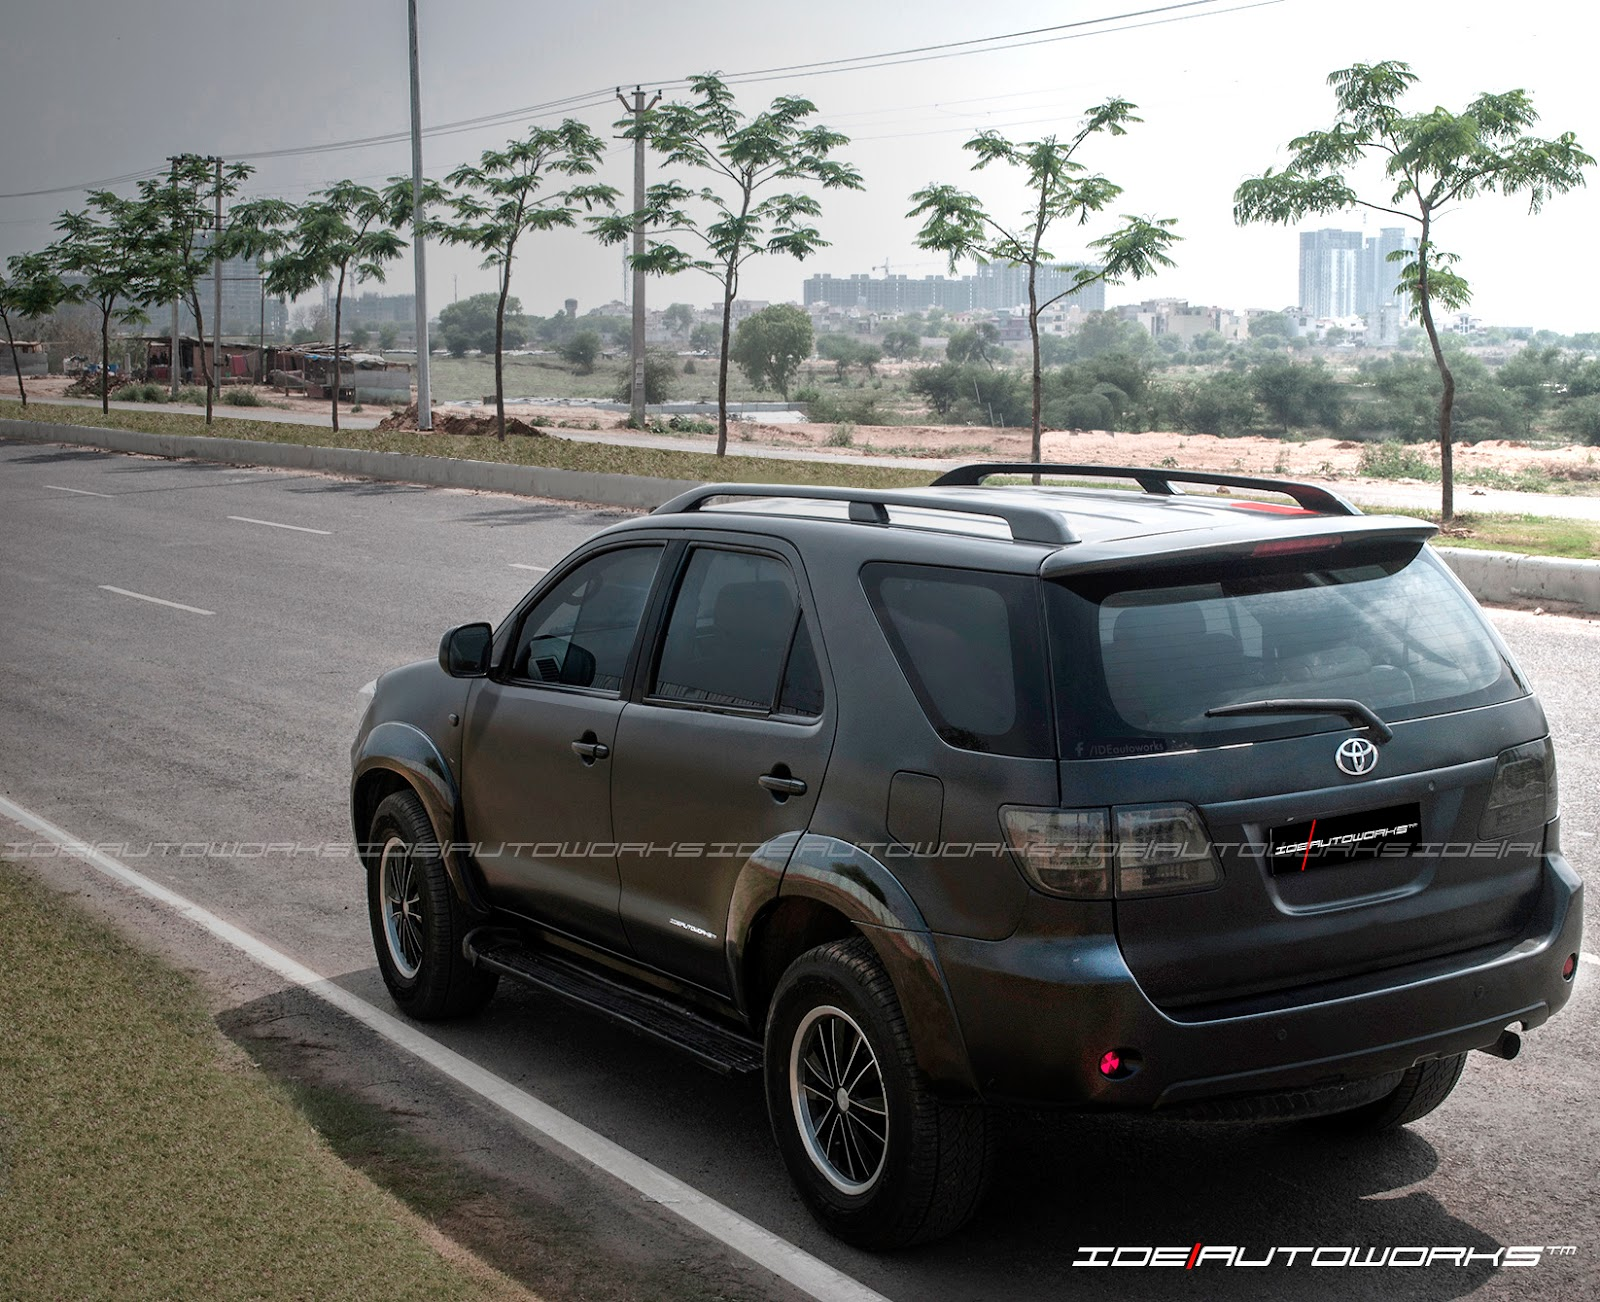 Modified car sites india images 14